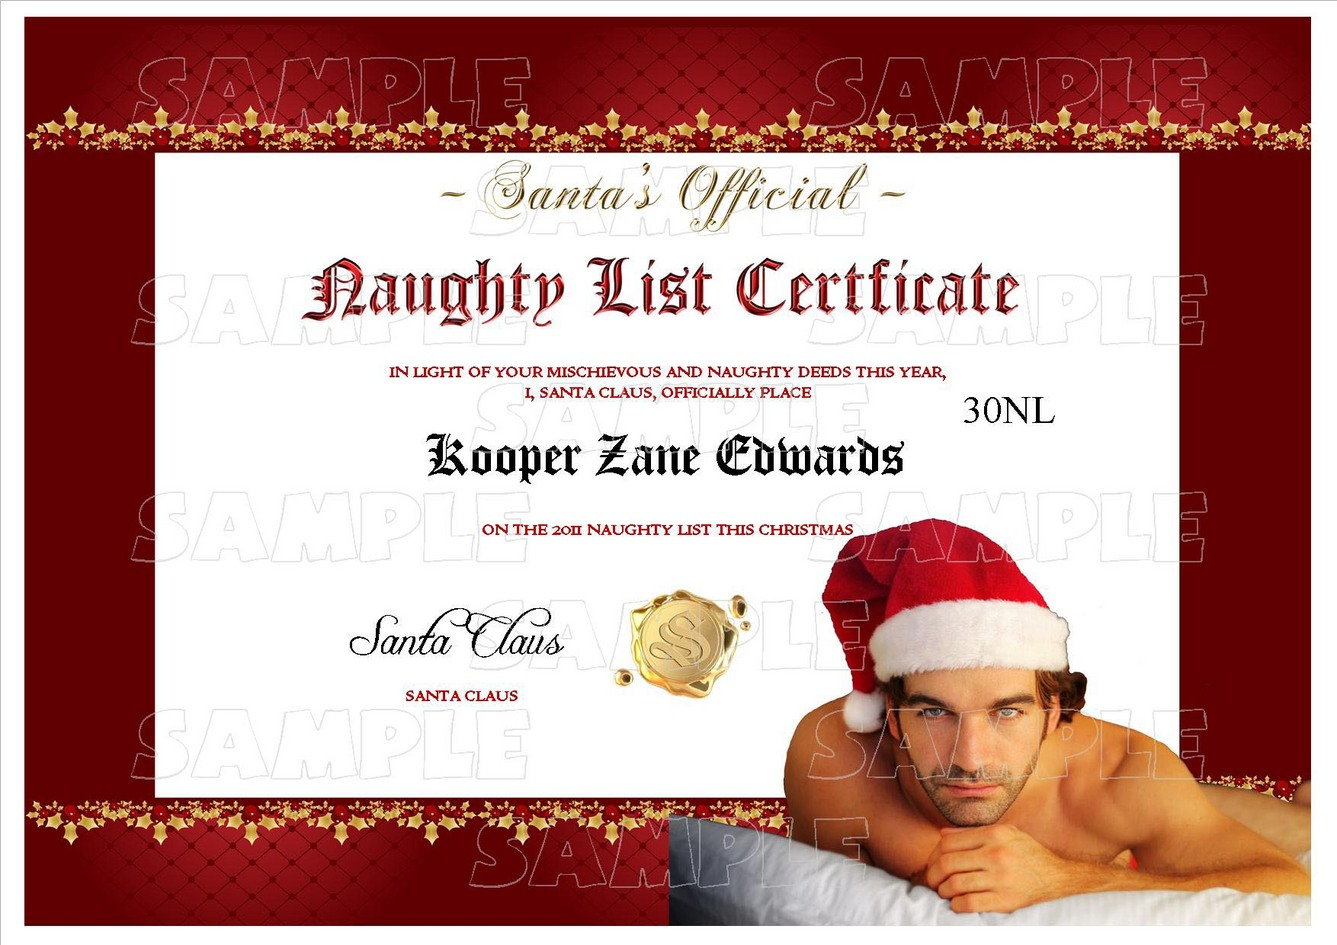 personalised santa letter good nice list certificate sexy adult range of naughty and nice lists